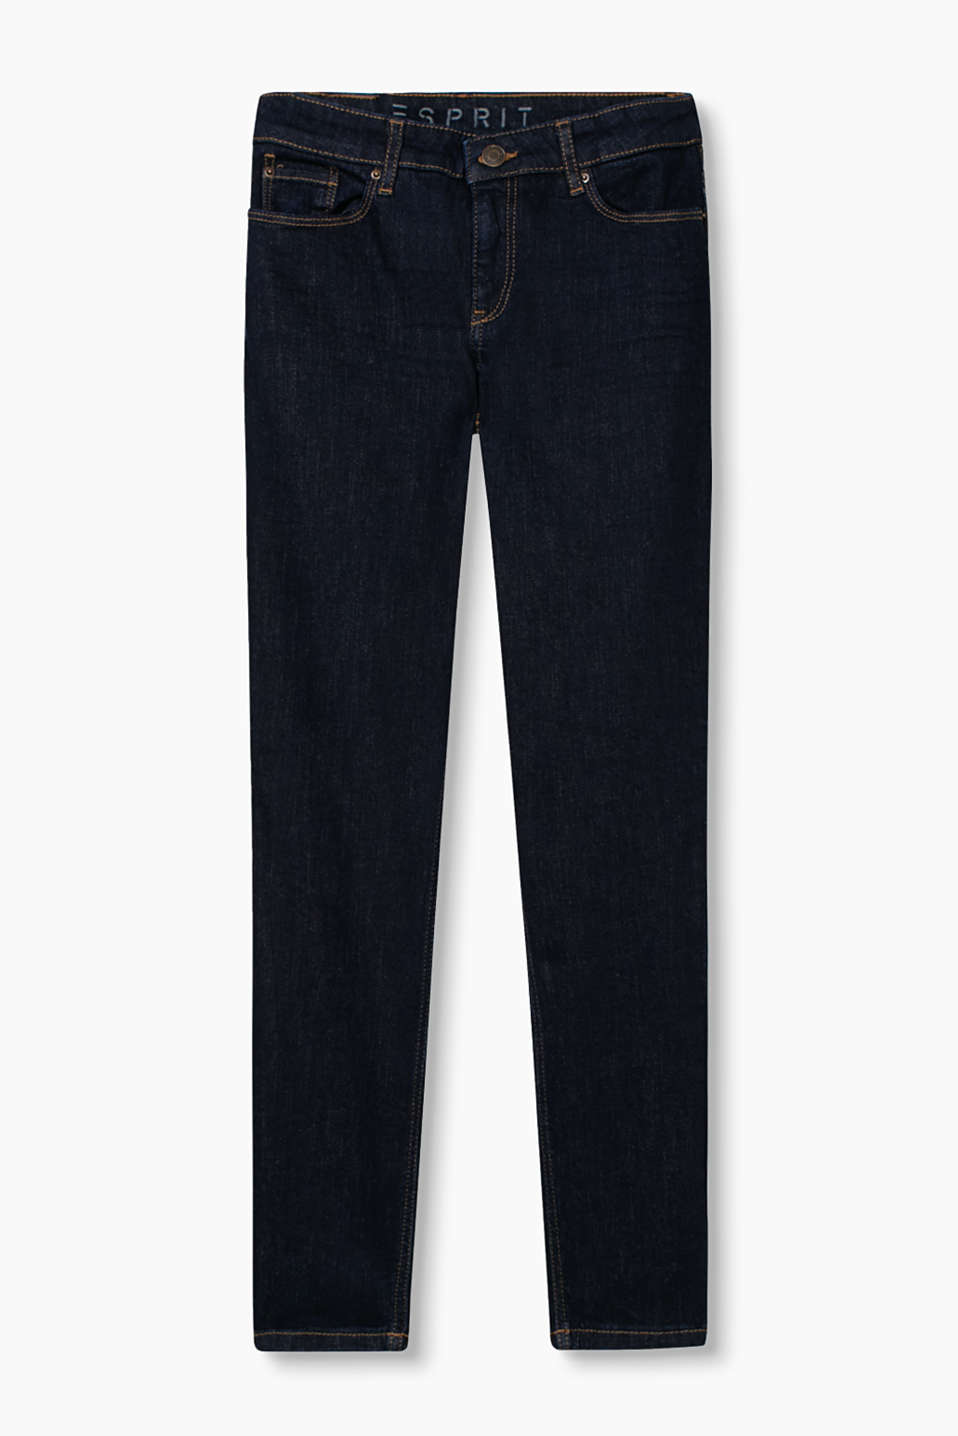 Fashionably cropped five-pocket jeans in comfortable stretch cotton